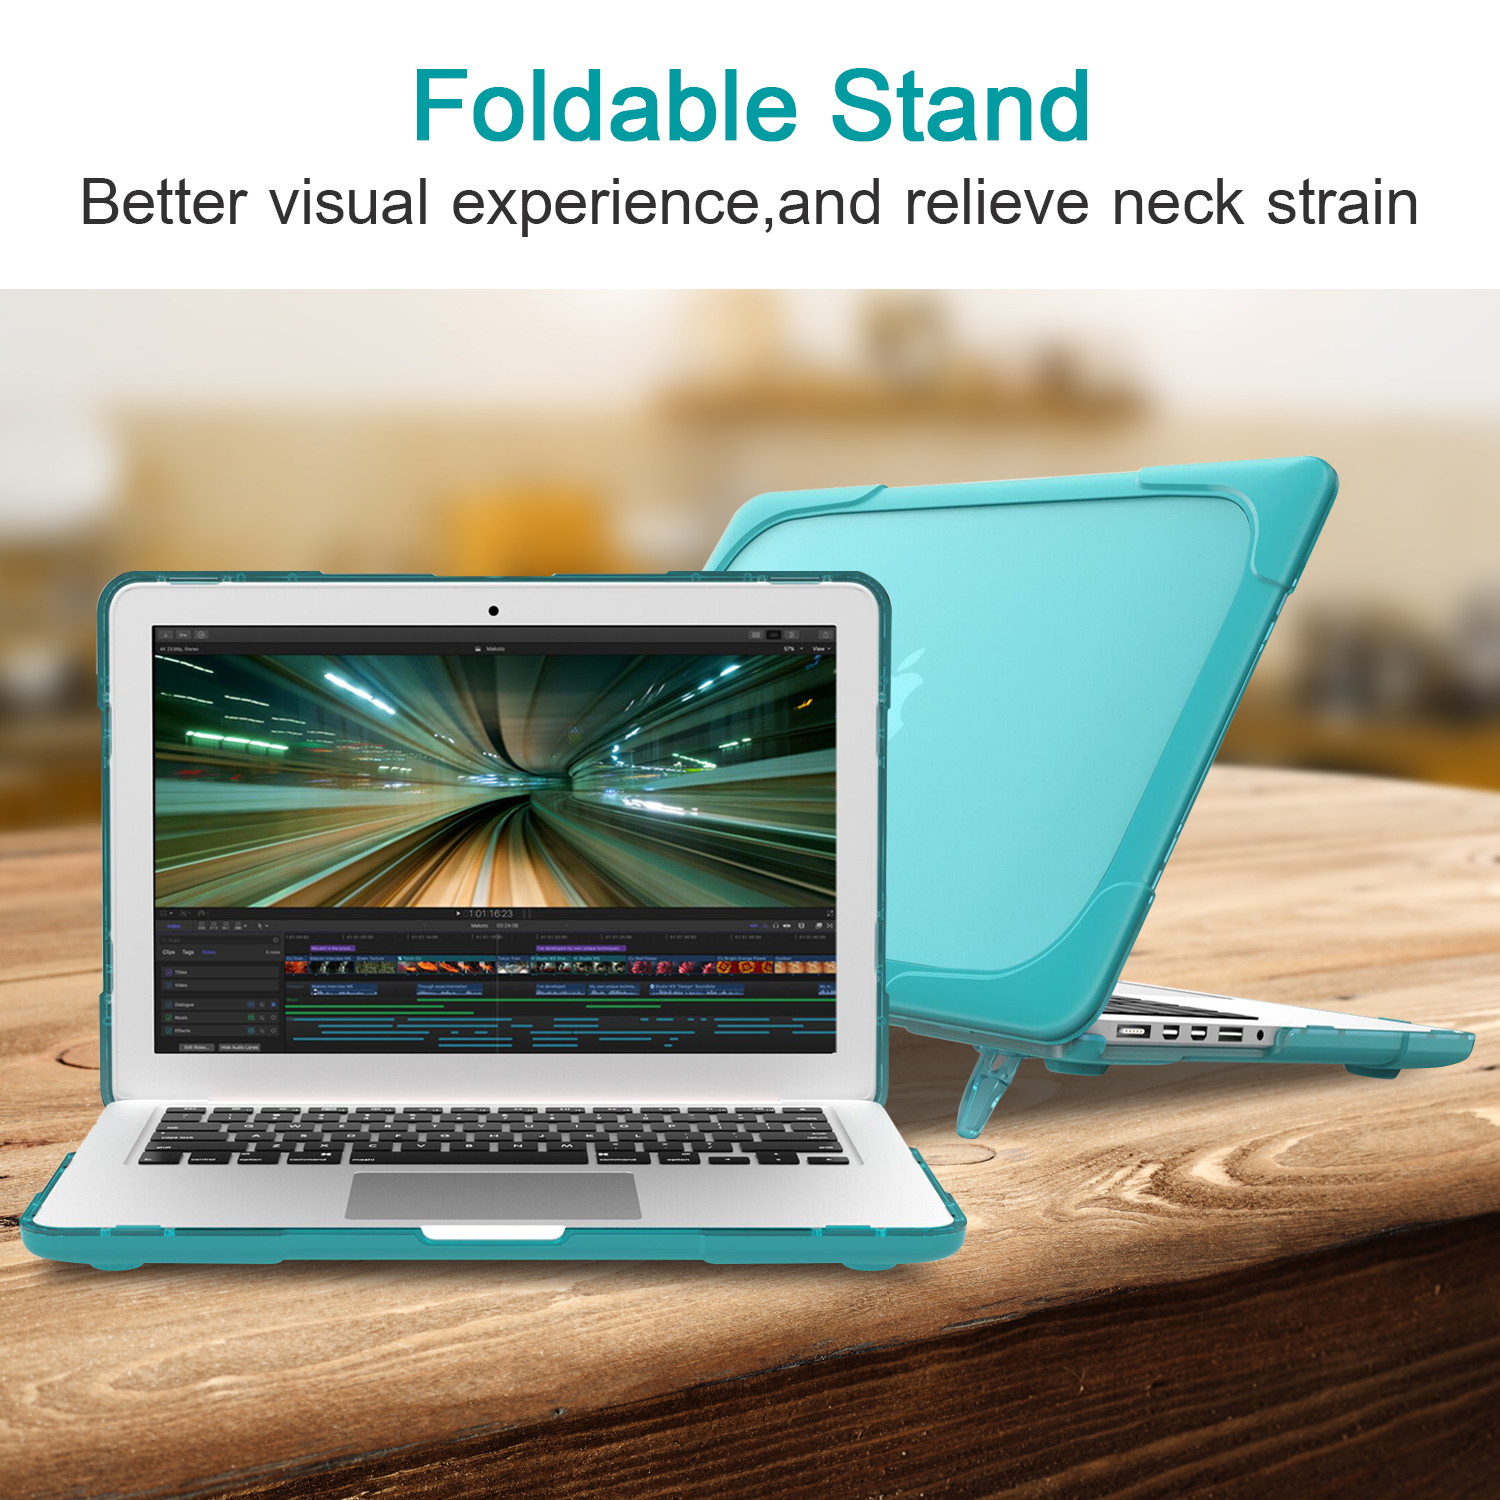 GOOJODOQ Laptop Case For MacBook Air 11 12 13 Pro 13 15 New Air 13 A1932 15.4 Case Shockproof Cover TPU + PC Bumper With Stand